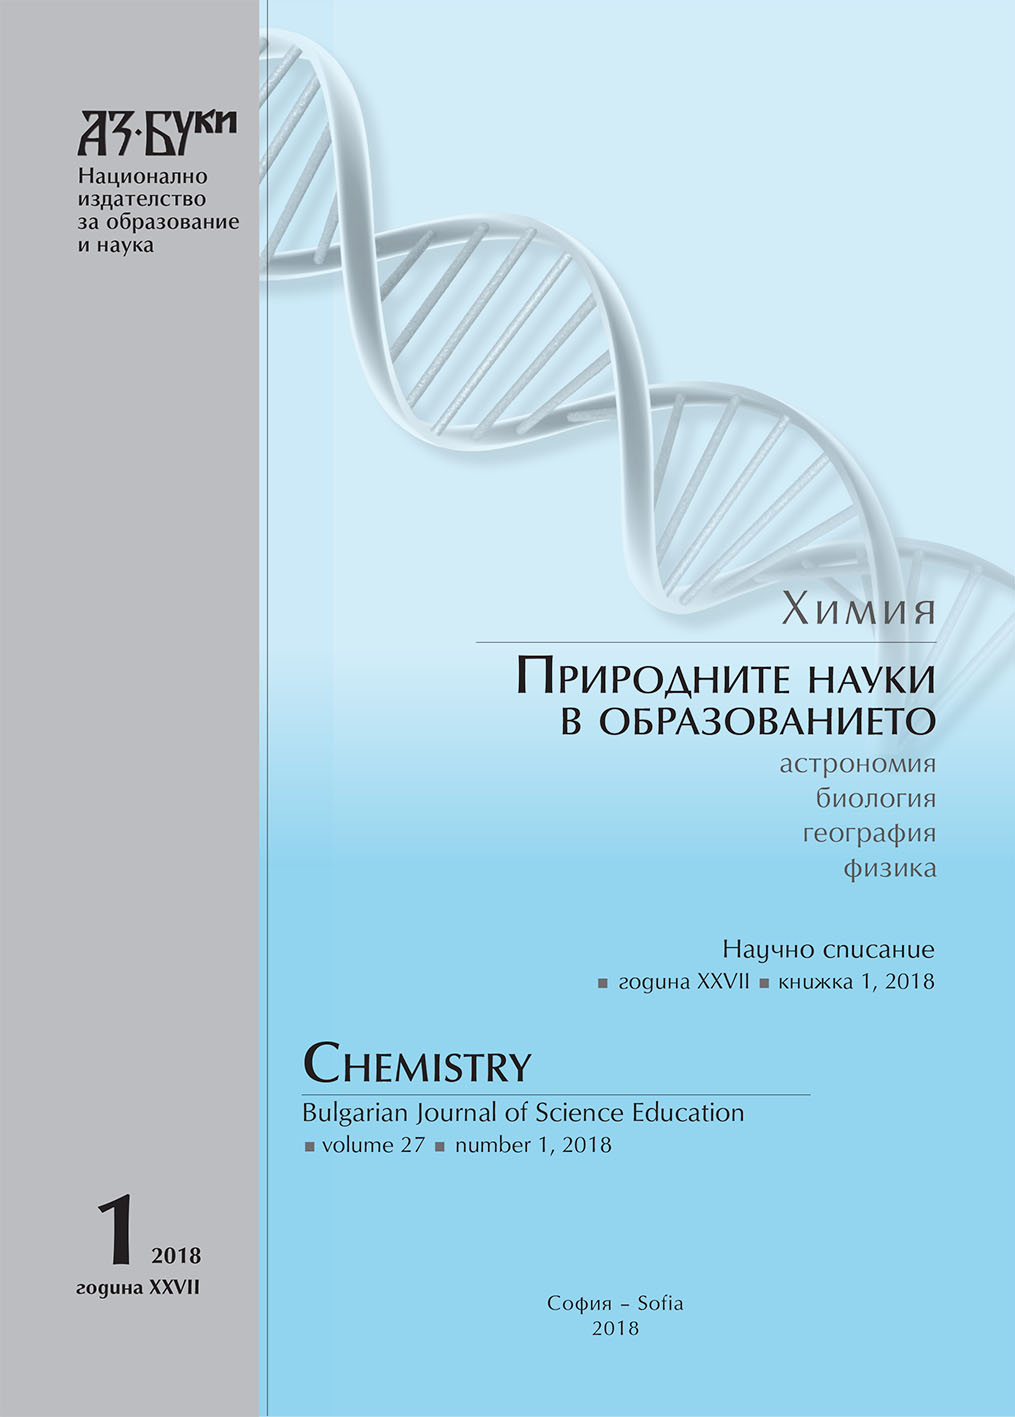 Bulgarian Journal of Science Education in 2018 Cover Image